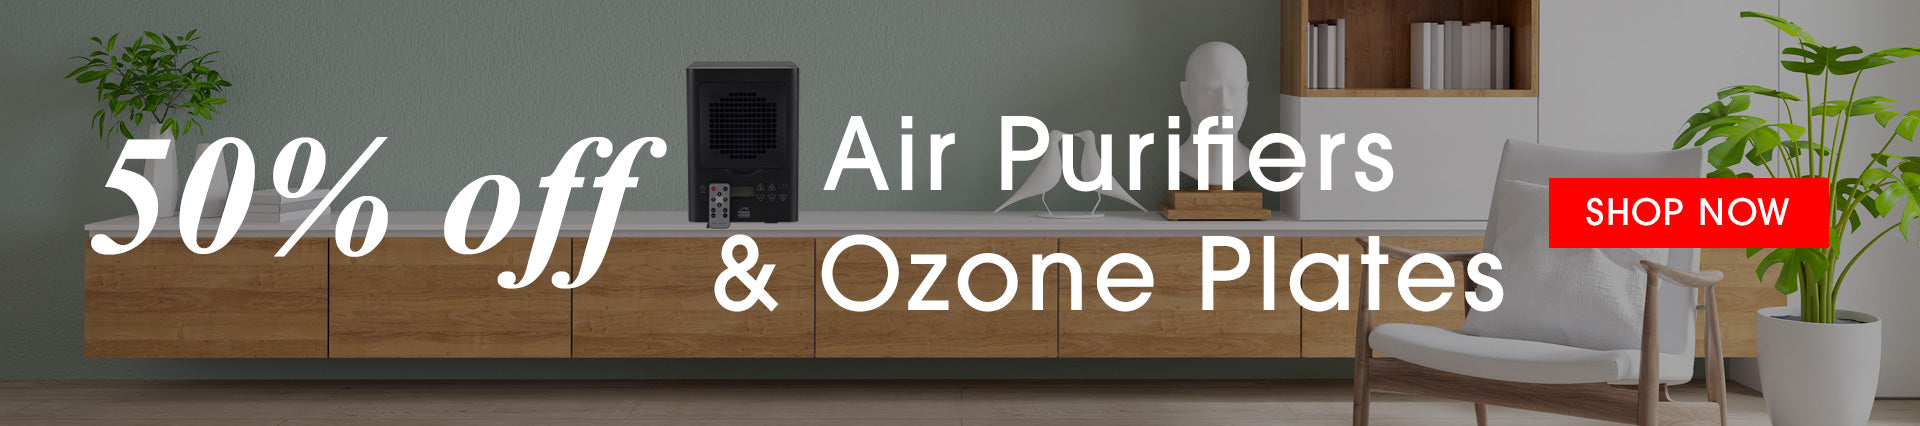 50% Off Air Purifiers and Ozone Plates